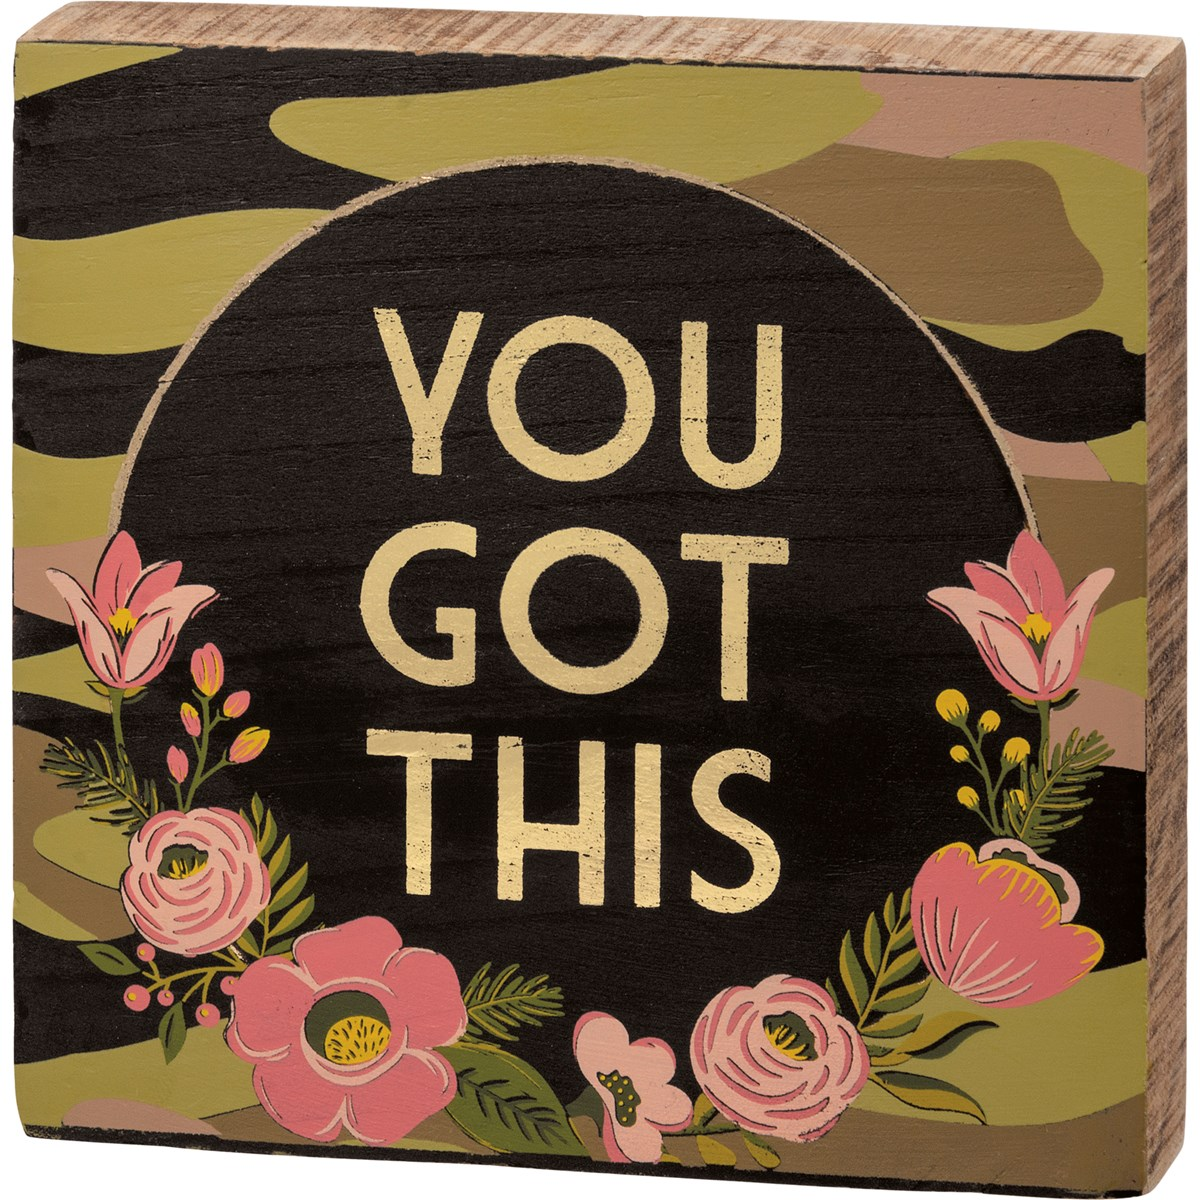 "Block Sign - You Got This - 6"" x 6"" x 1"" - Wood"